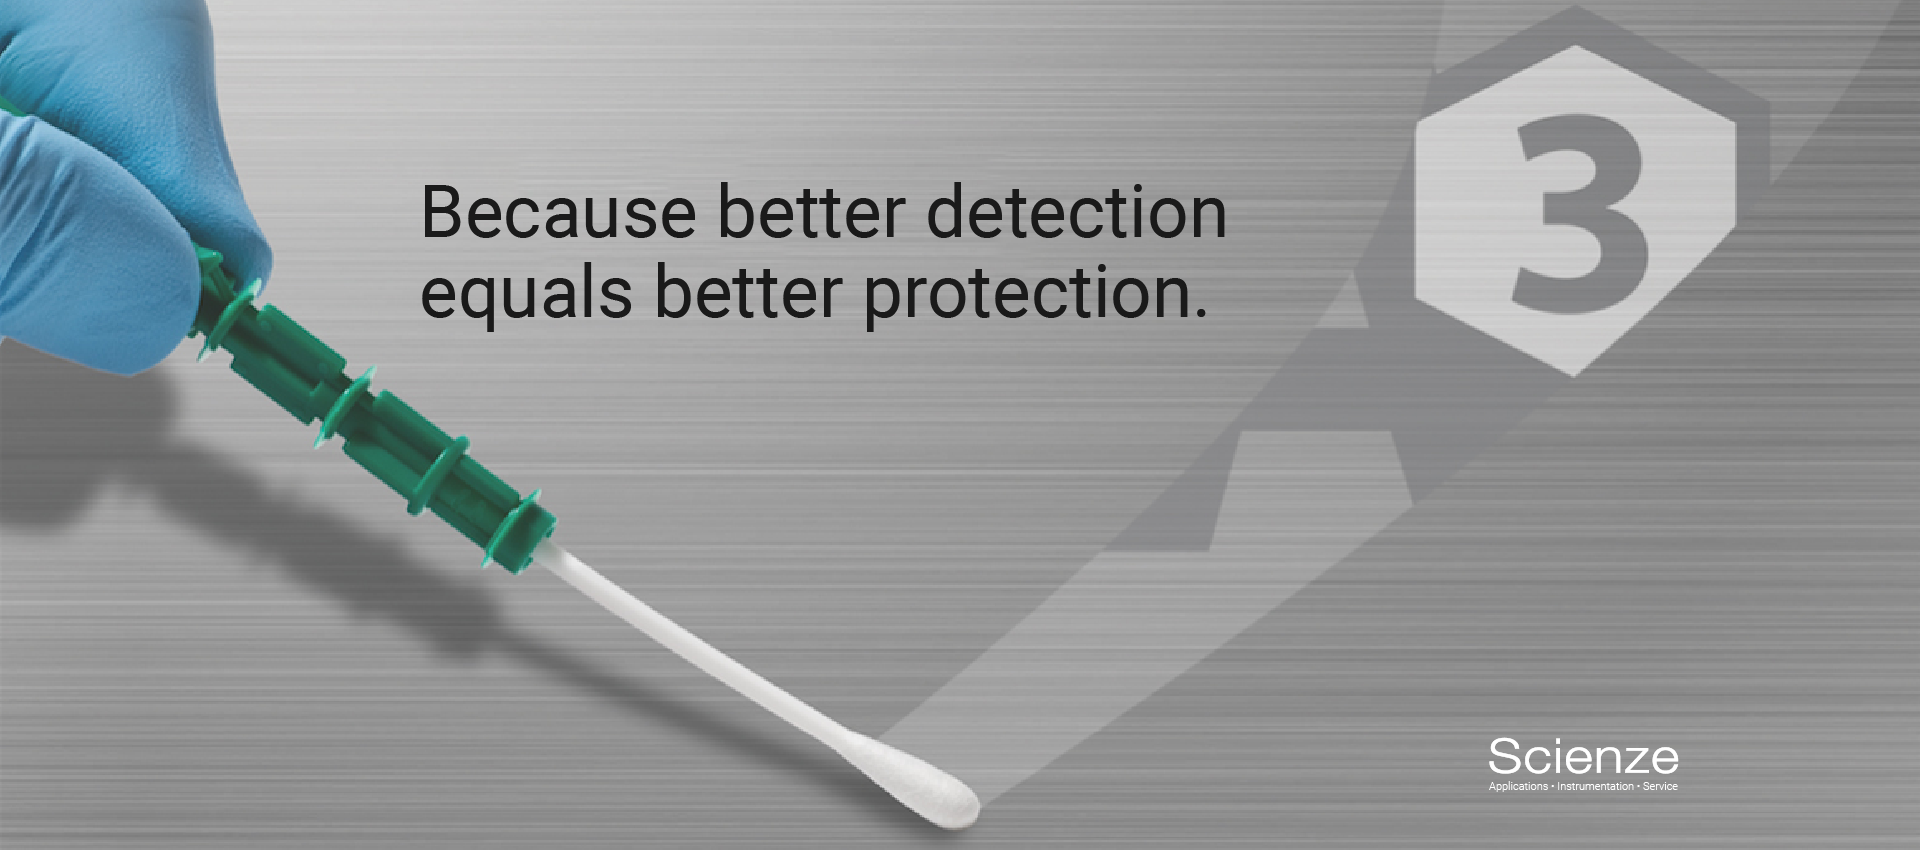 It's a unique and powerful advantage. Only Kikkoman's new LuciPac A3 Sanitation System detects ATP+ADP+AMP with one swab to give you the whole picture. Its patented A3 Technology has been proven to detect residues and microorganisms that others miss. And it's incredibly easy to use. Just swab the way you always have, while enjoying the most advanced sensitivity and detection power available. It's detection perfection.